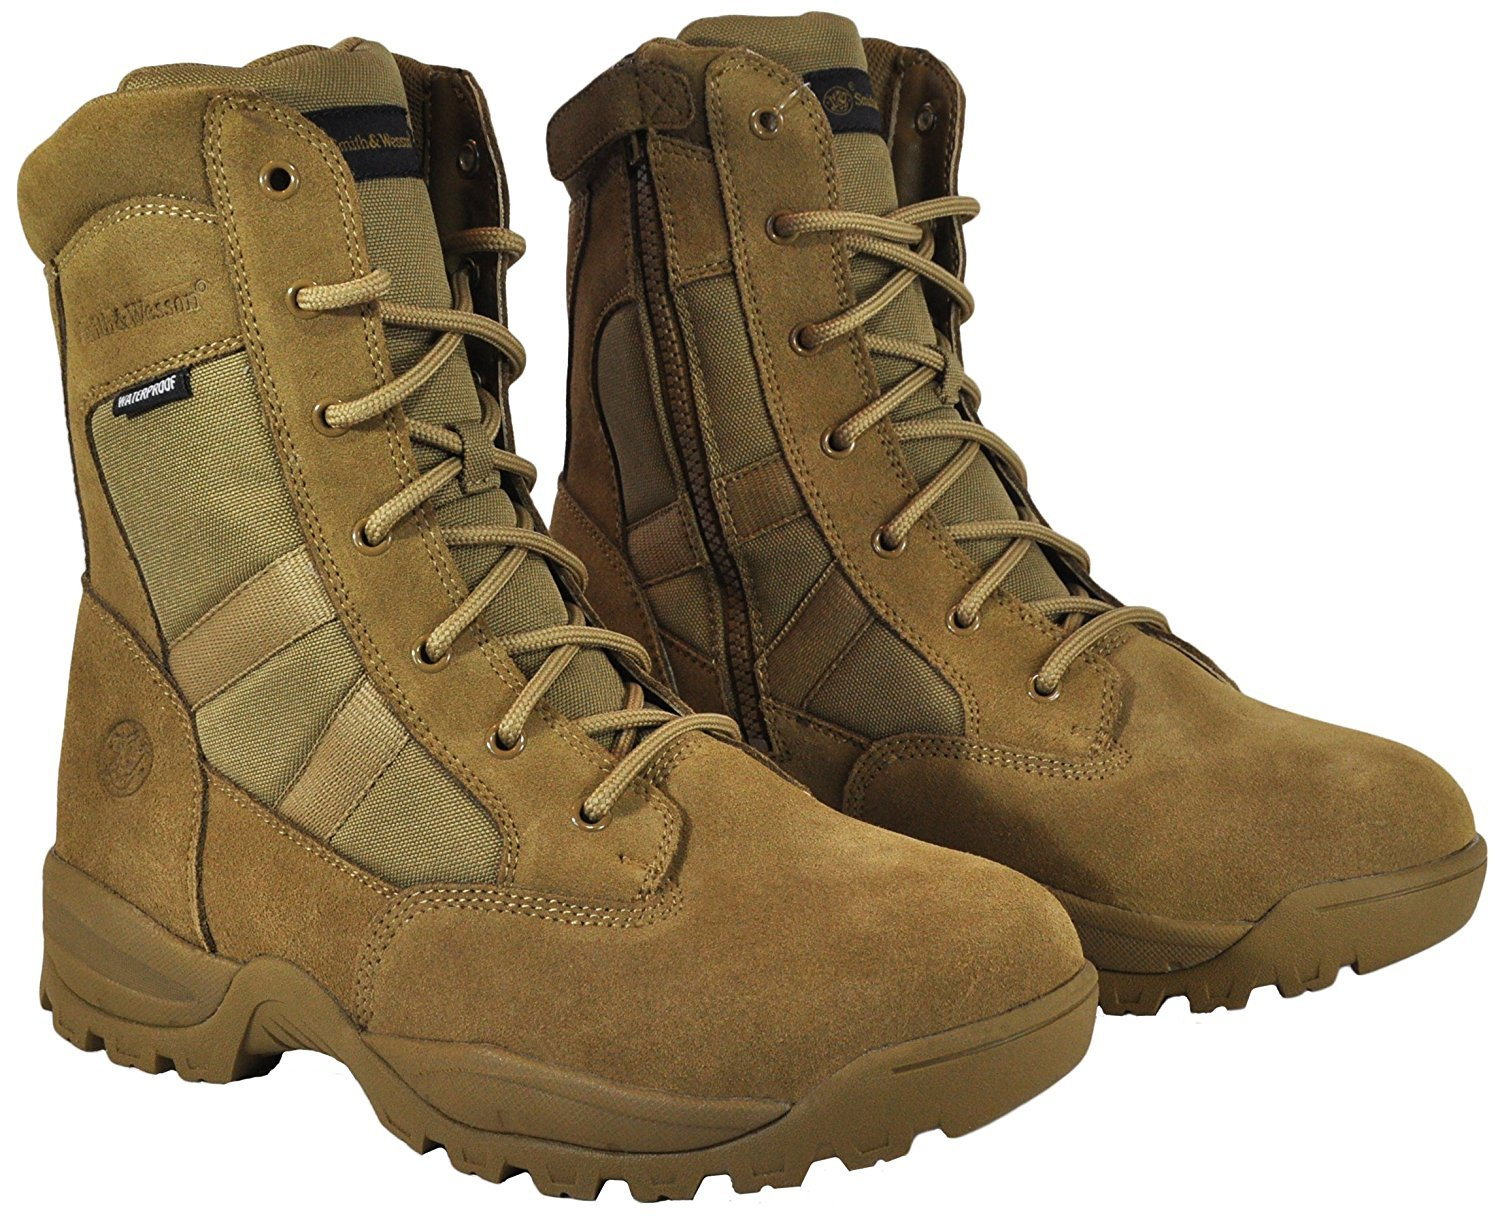 Smith & Wesson Footwear Men's Breach 2.0 Tactical Size Zip Boots, Coyote, 10W by Smith & Wesson (Image #4)